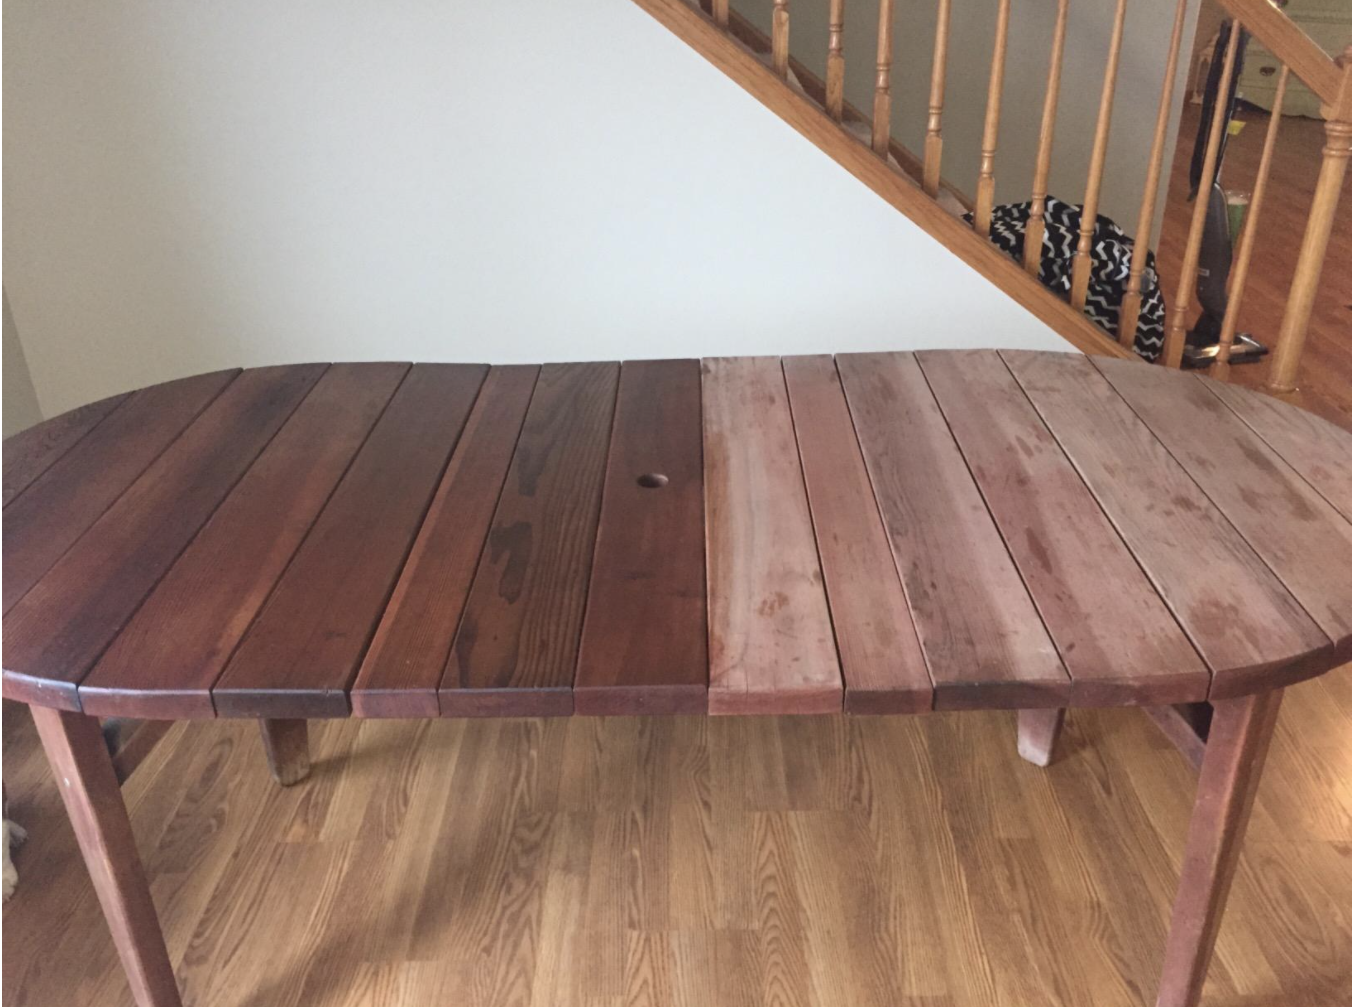 a reviewer photo of a table with the before on the right side of the photo and the after on the left showing a significant difference in the shade and shine of the wood